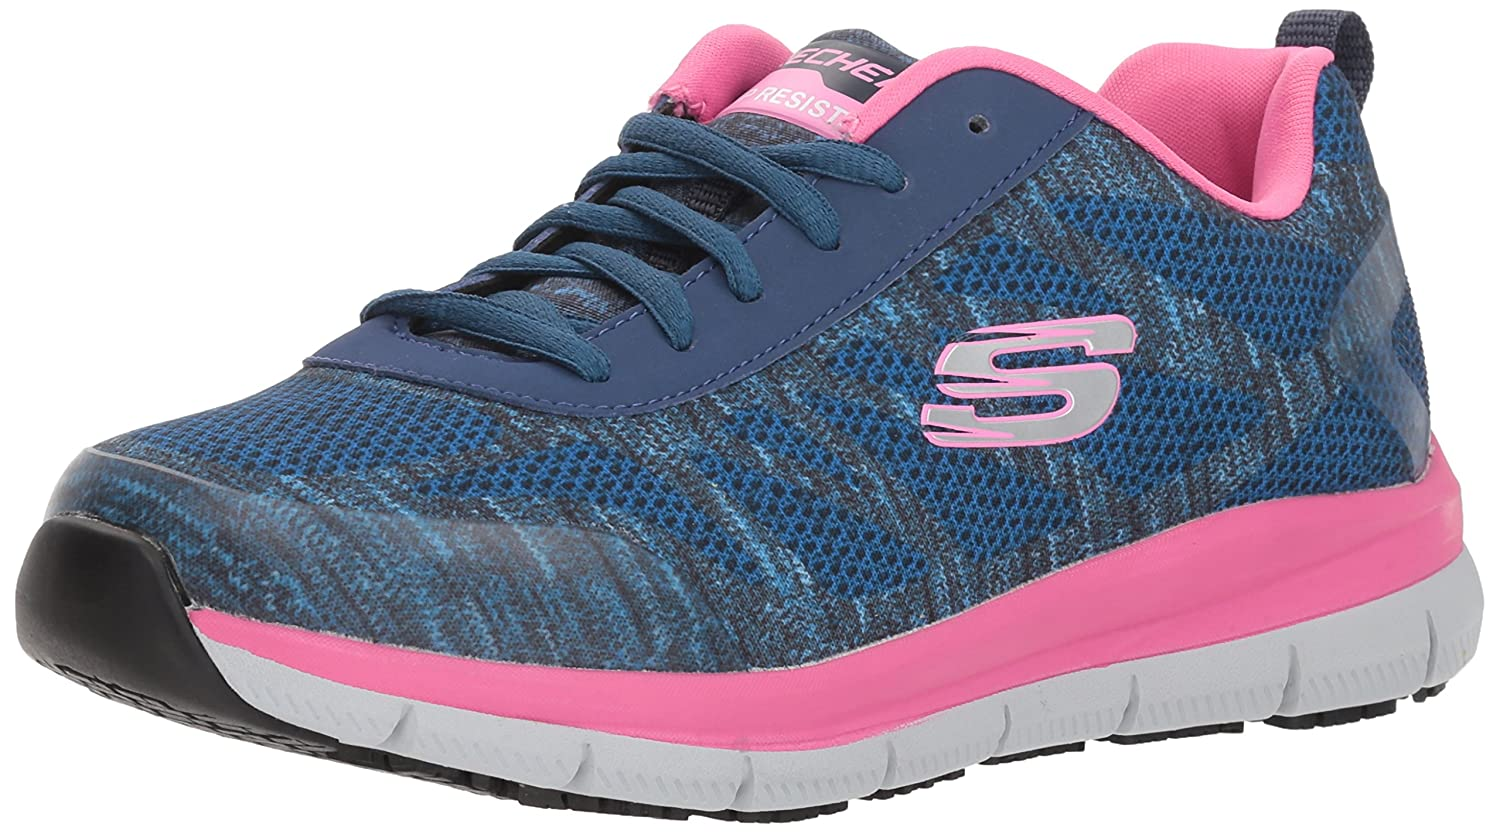 Skechers Women's Comfort Flex HC Pro SR Health Care Service Shoe B078Z26SJ5 8.5 W US|Navy/Pink